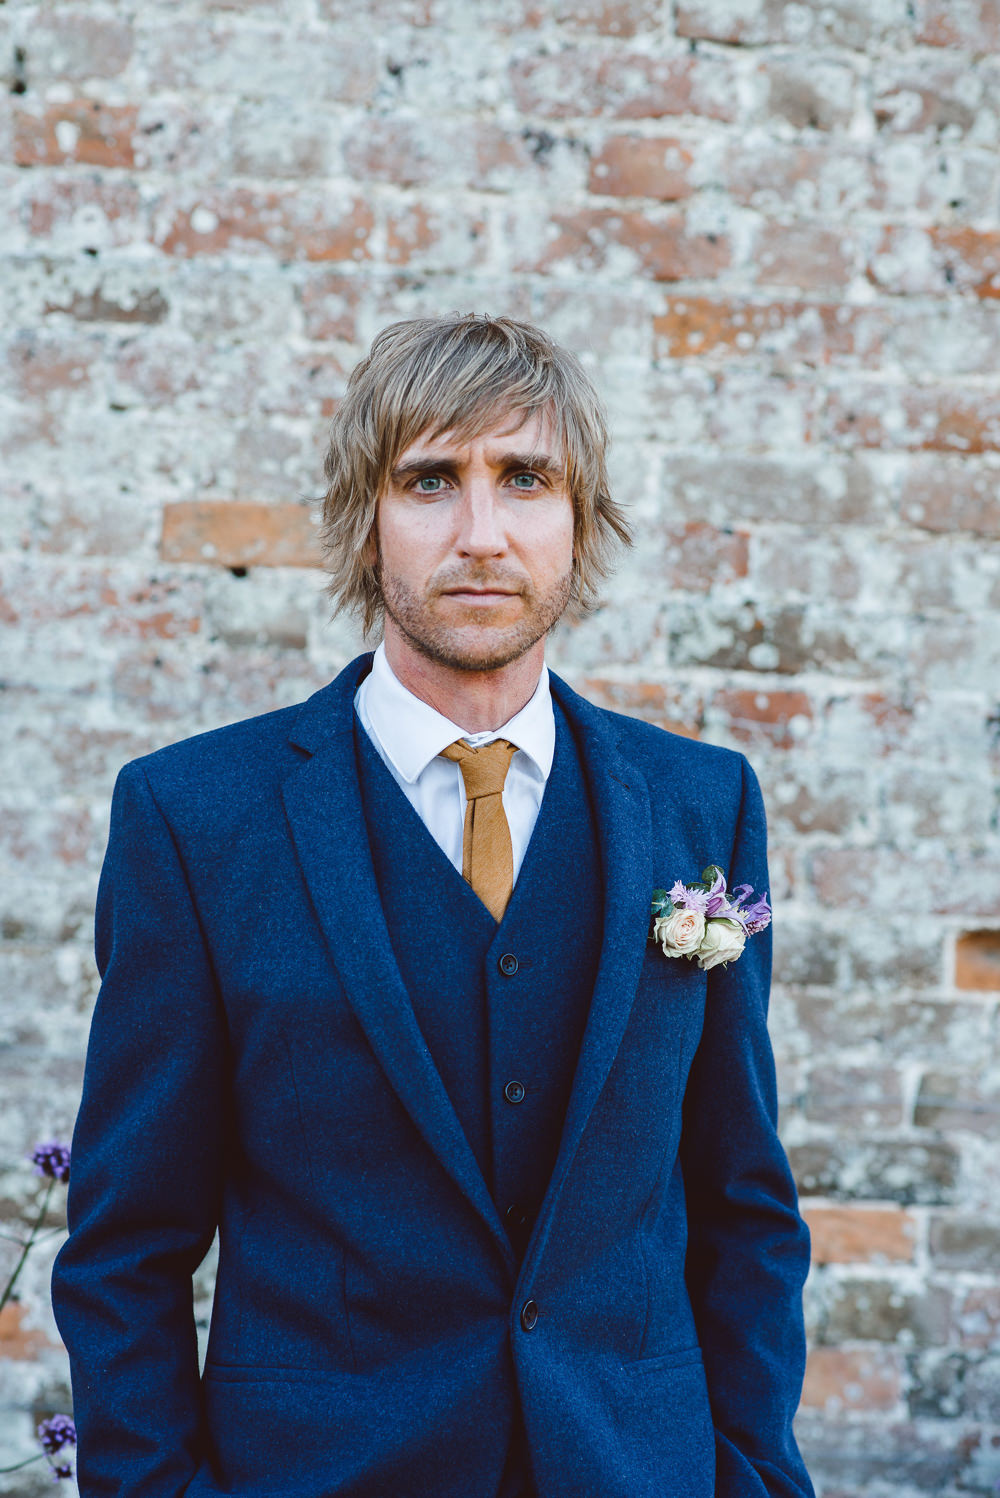 Groom Suit Navy Blue Gold Tie Ethereal Magical Golden Hour Wedding Ideas Dhw Photography